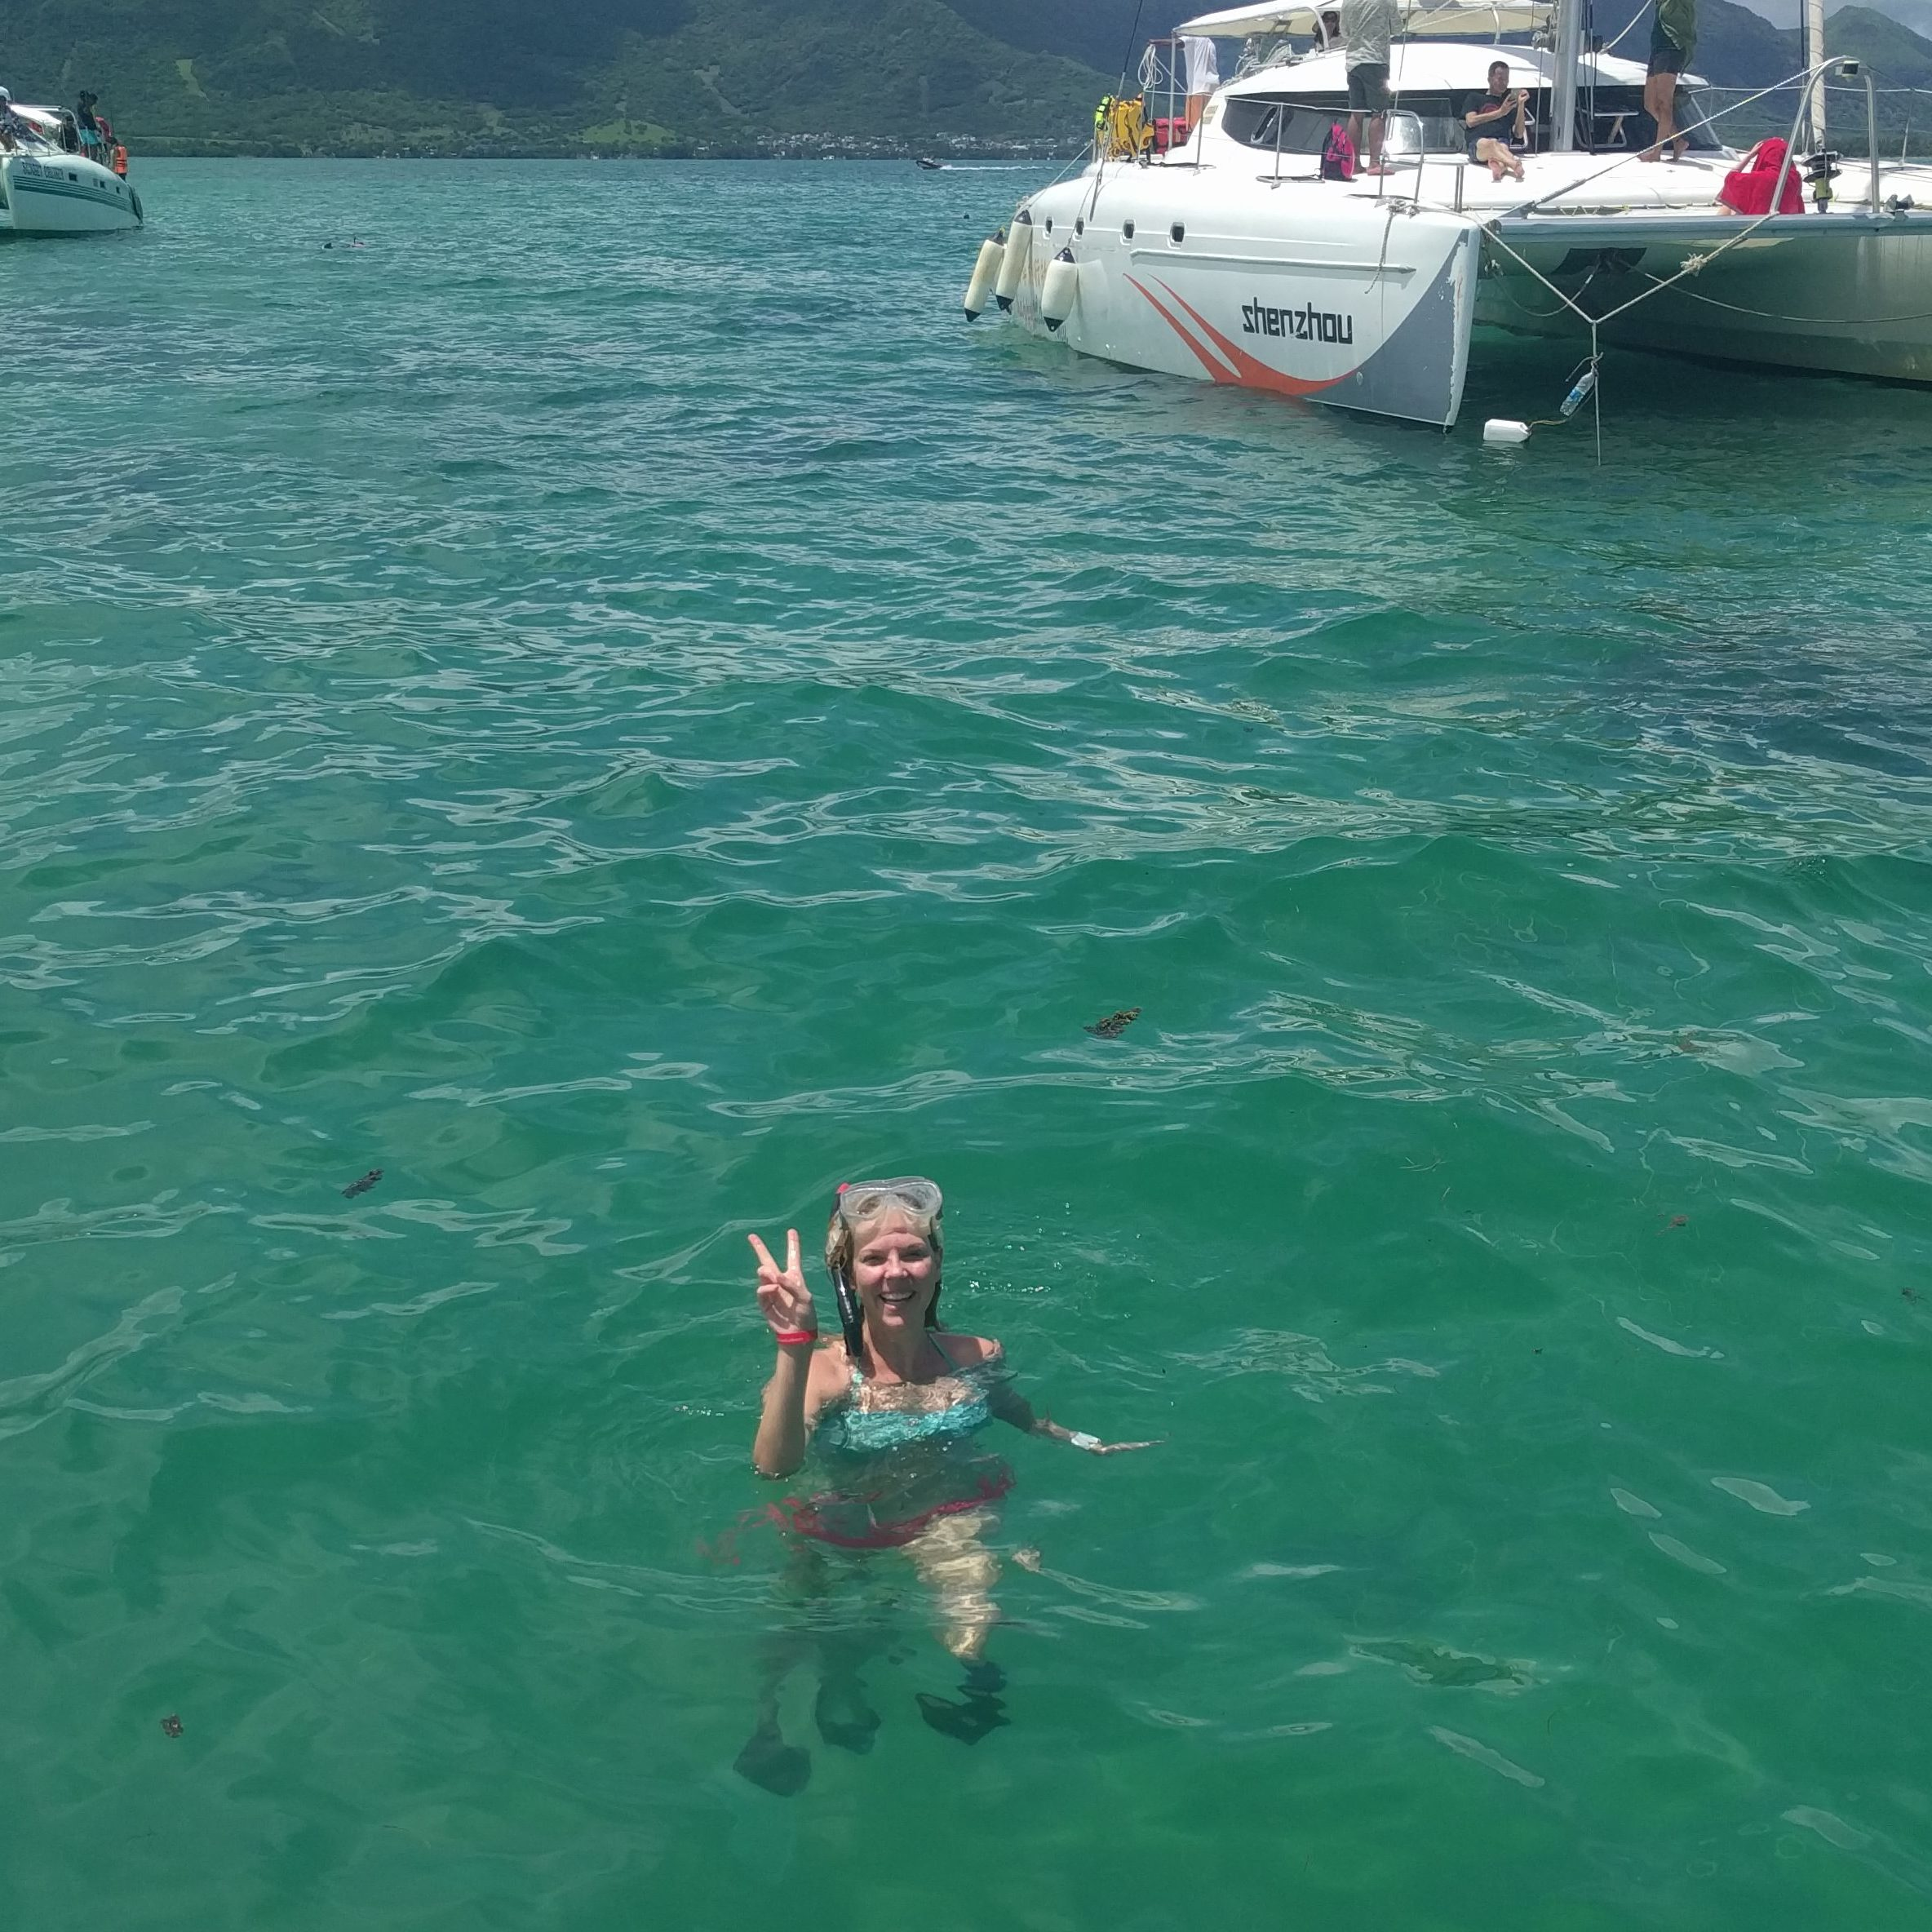 Dive off the boat and have a snorkel